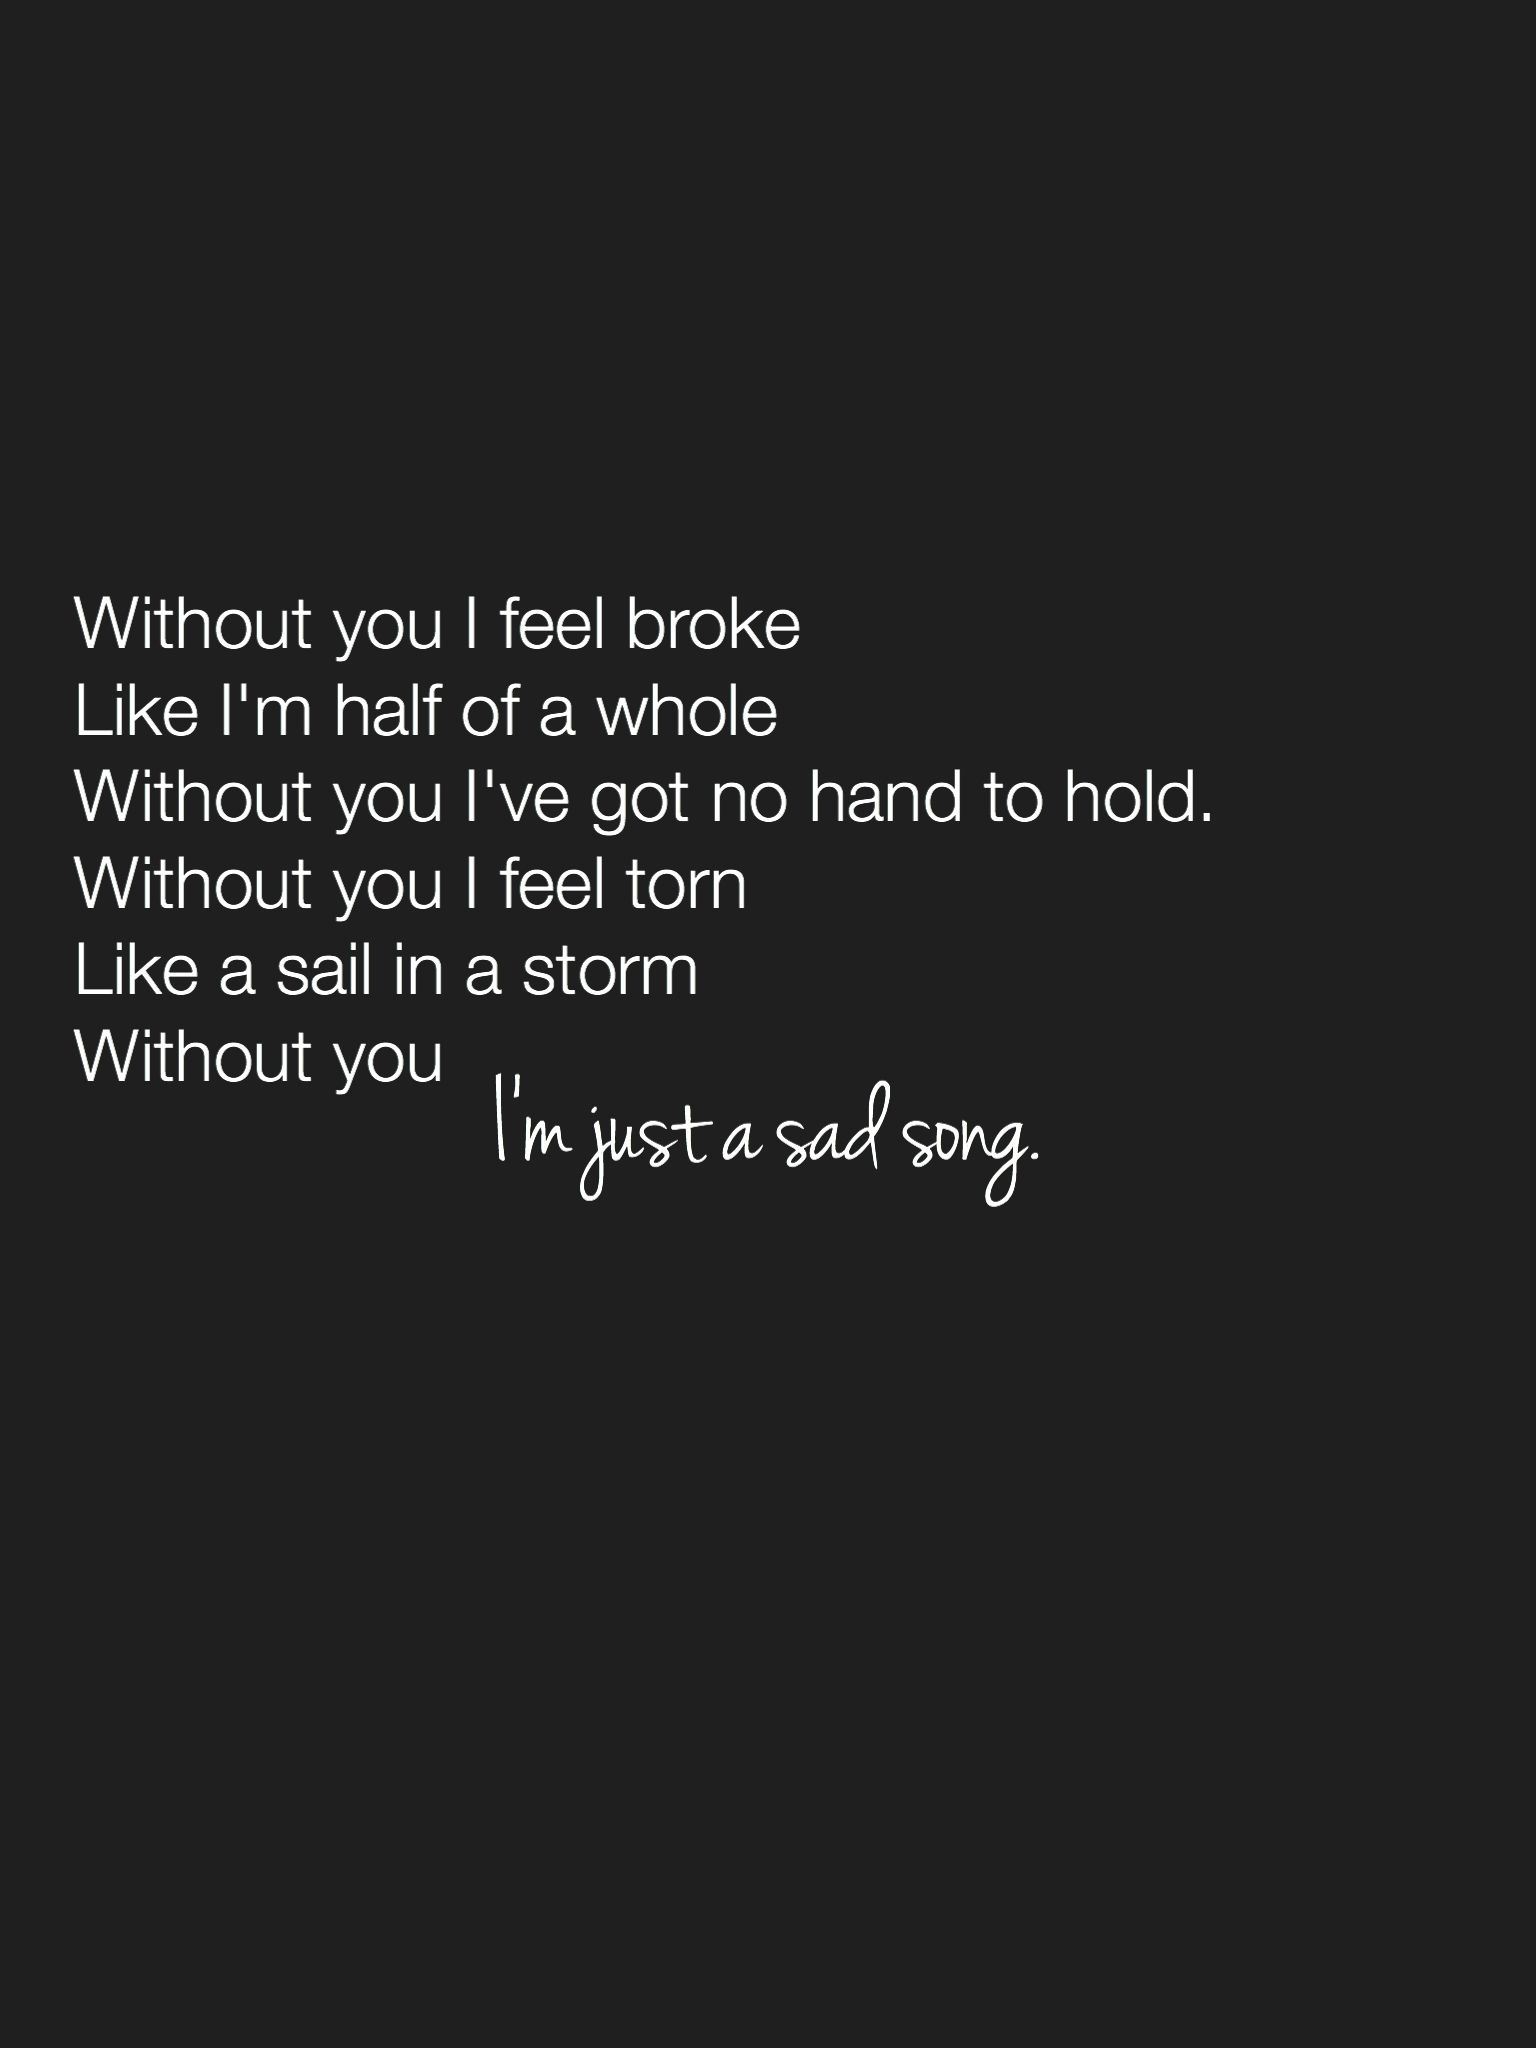 Sad song lyric quotes